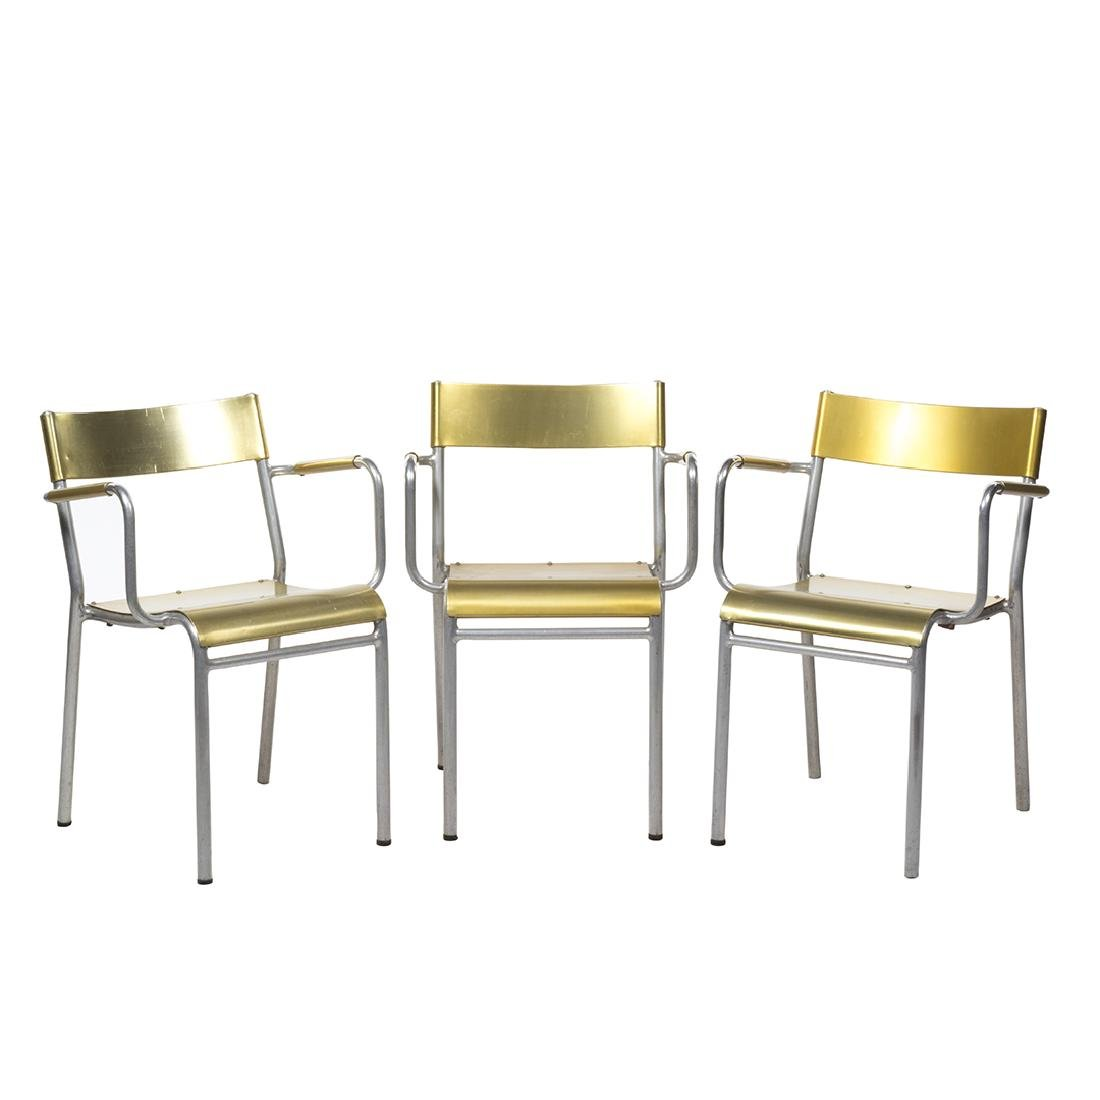 Franco Albini Attributed Stacking Chairs (3)